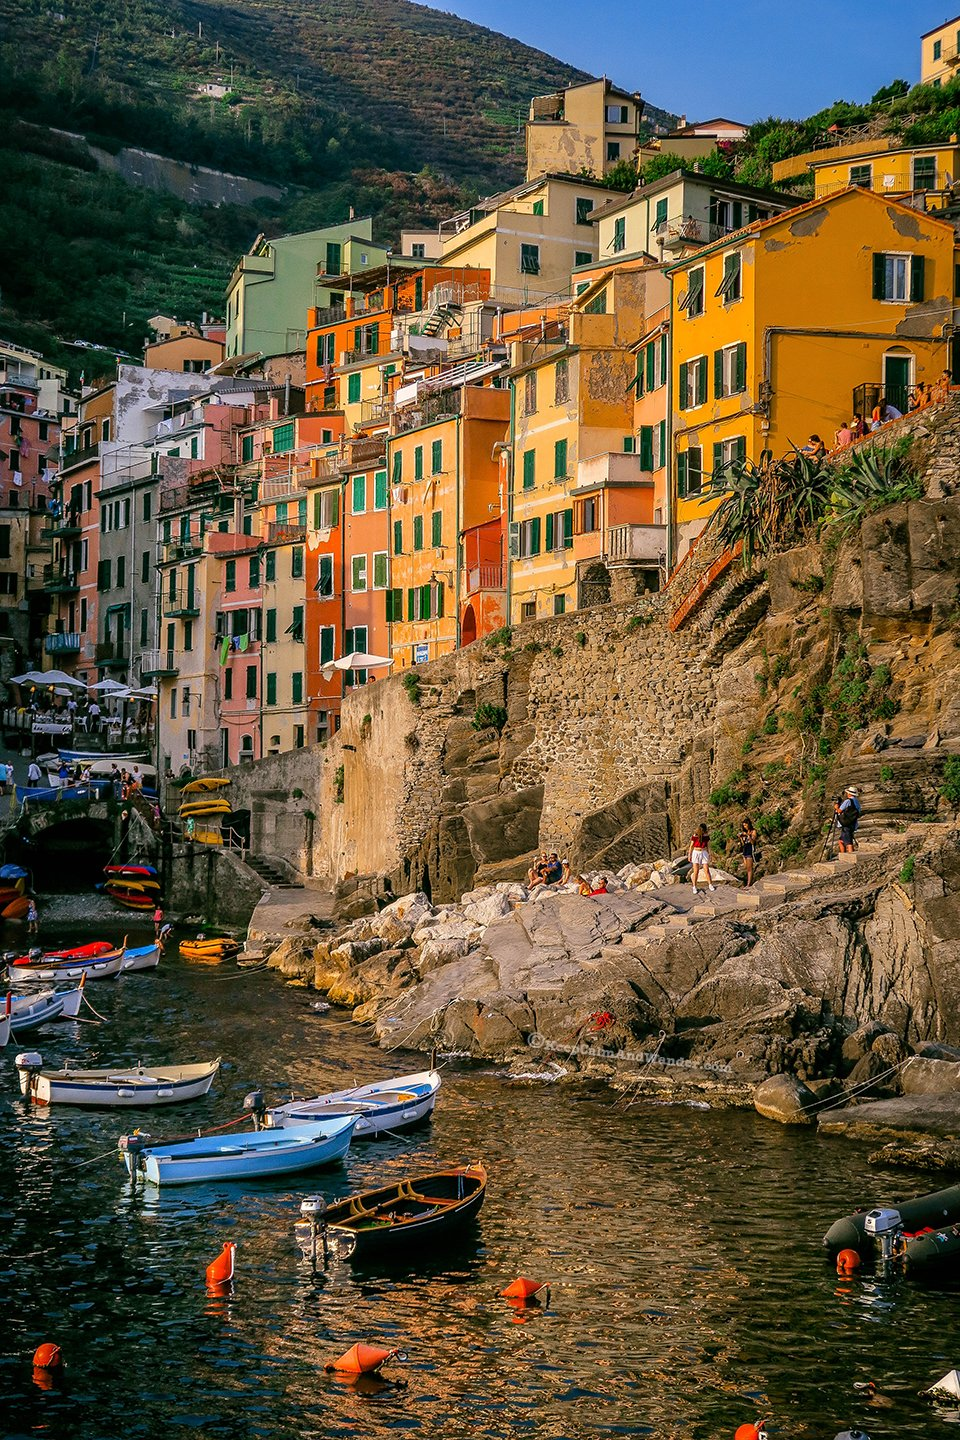 Riomaggiore in Cinque Terre is Your Postcard Perfect Place in Italy.